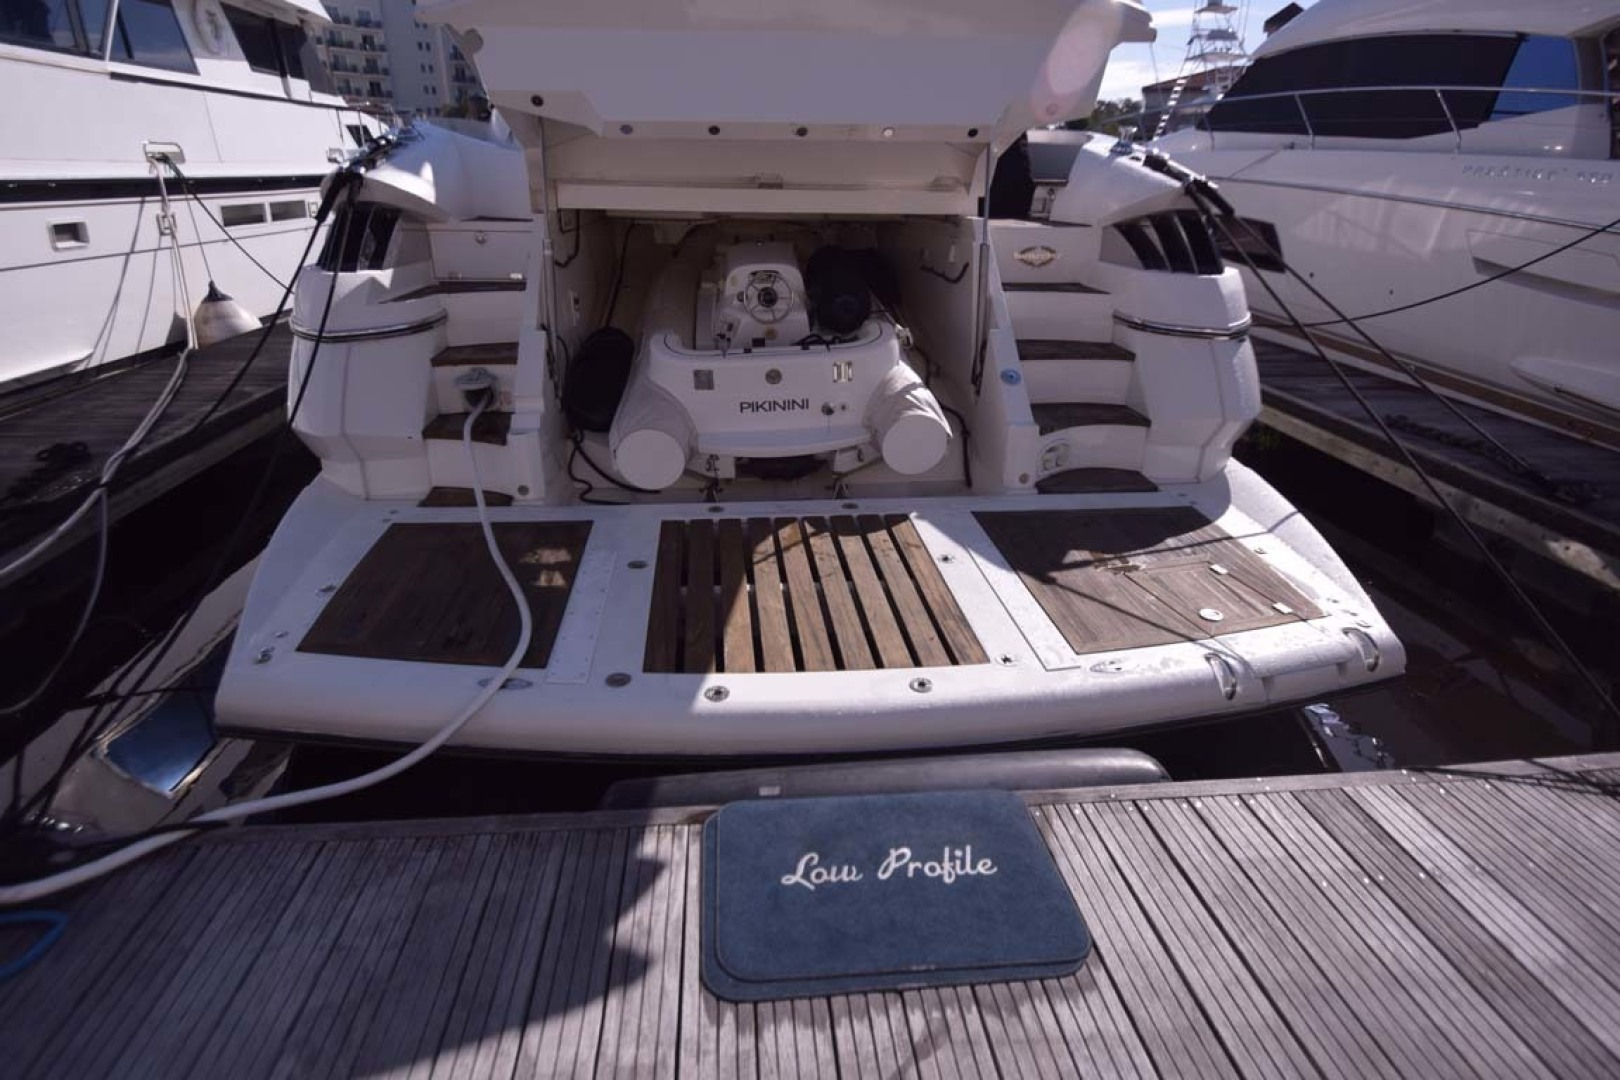 Sunseeker-Predator 2003-Low Profile PALM BEACH-Florida-United States-Tender In Garage View From Dock-1576395 | Thumbnail